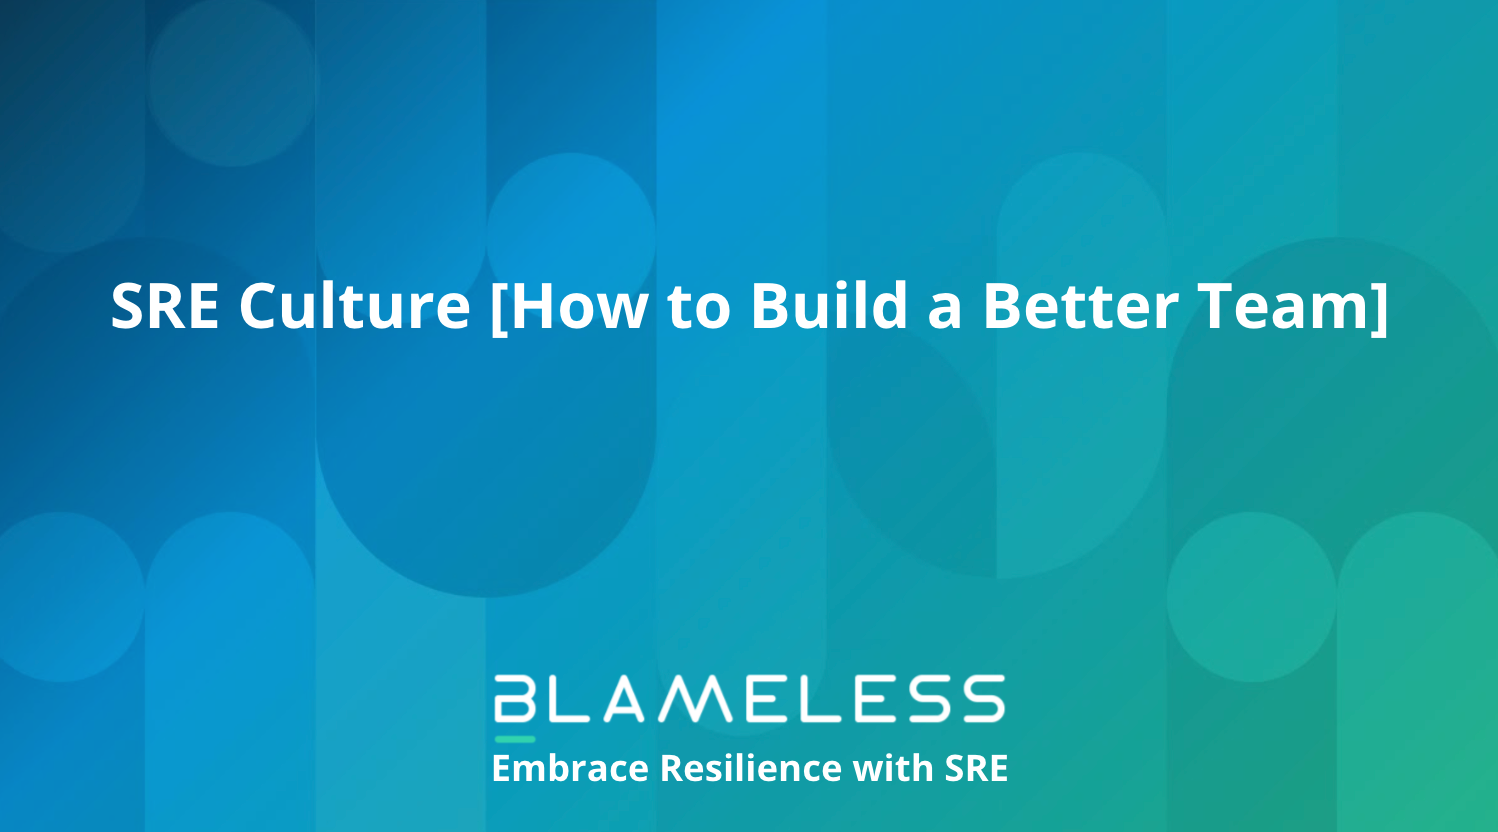 SRE Culture [How to Build a Better Team]